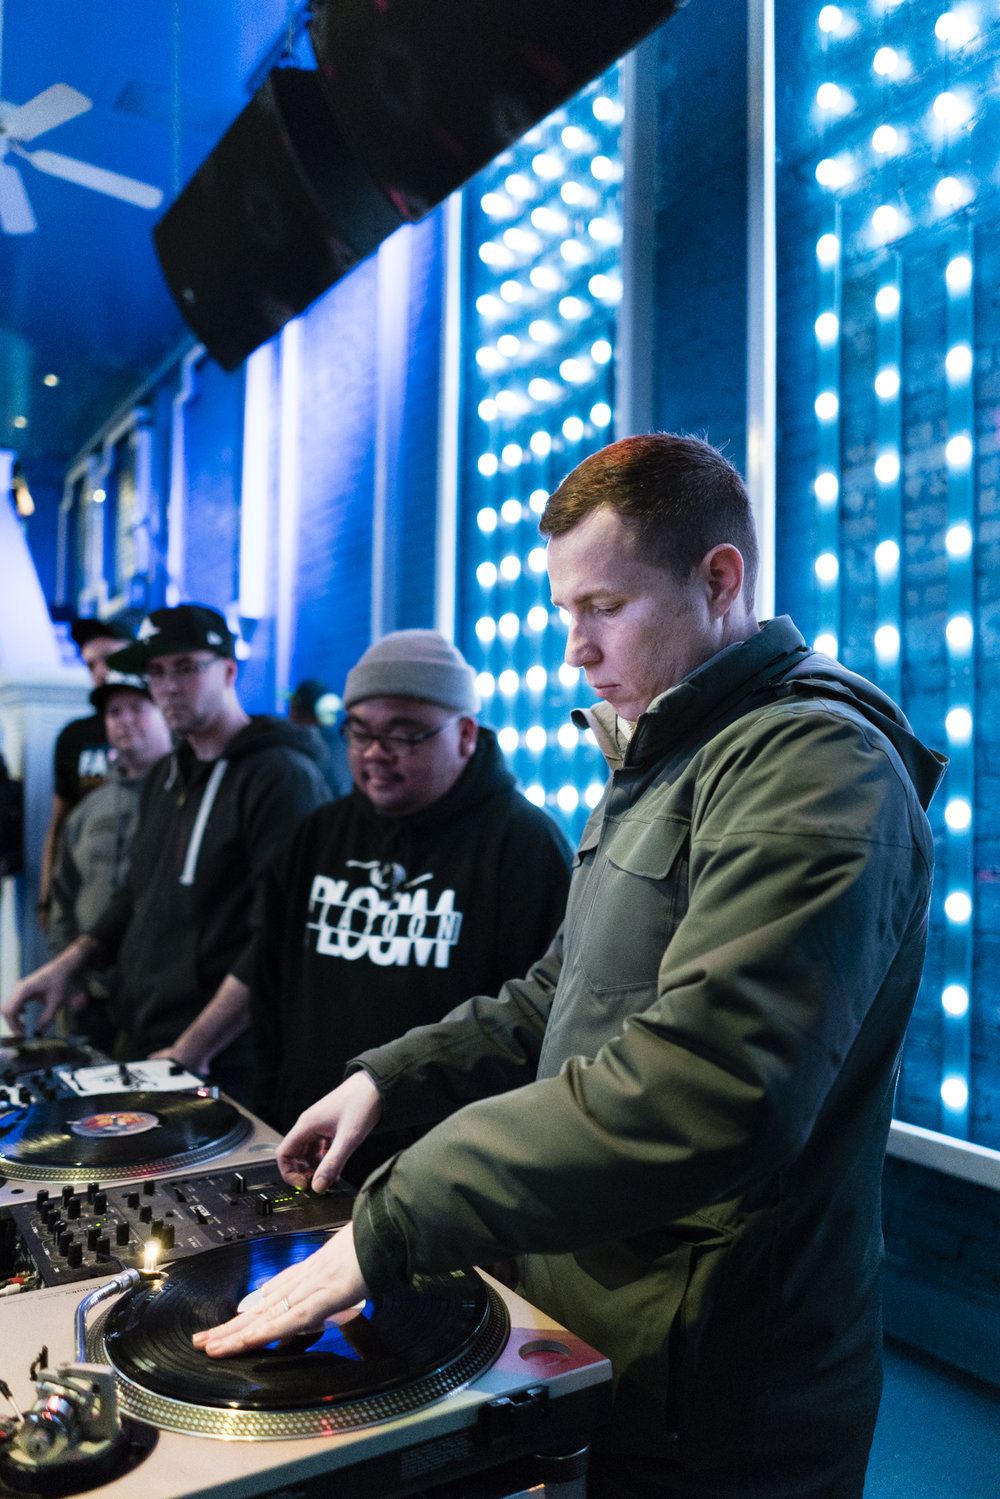 2017_02_02_Skratch Lounge_0022_Export.jpg